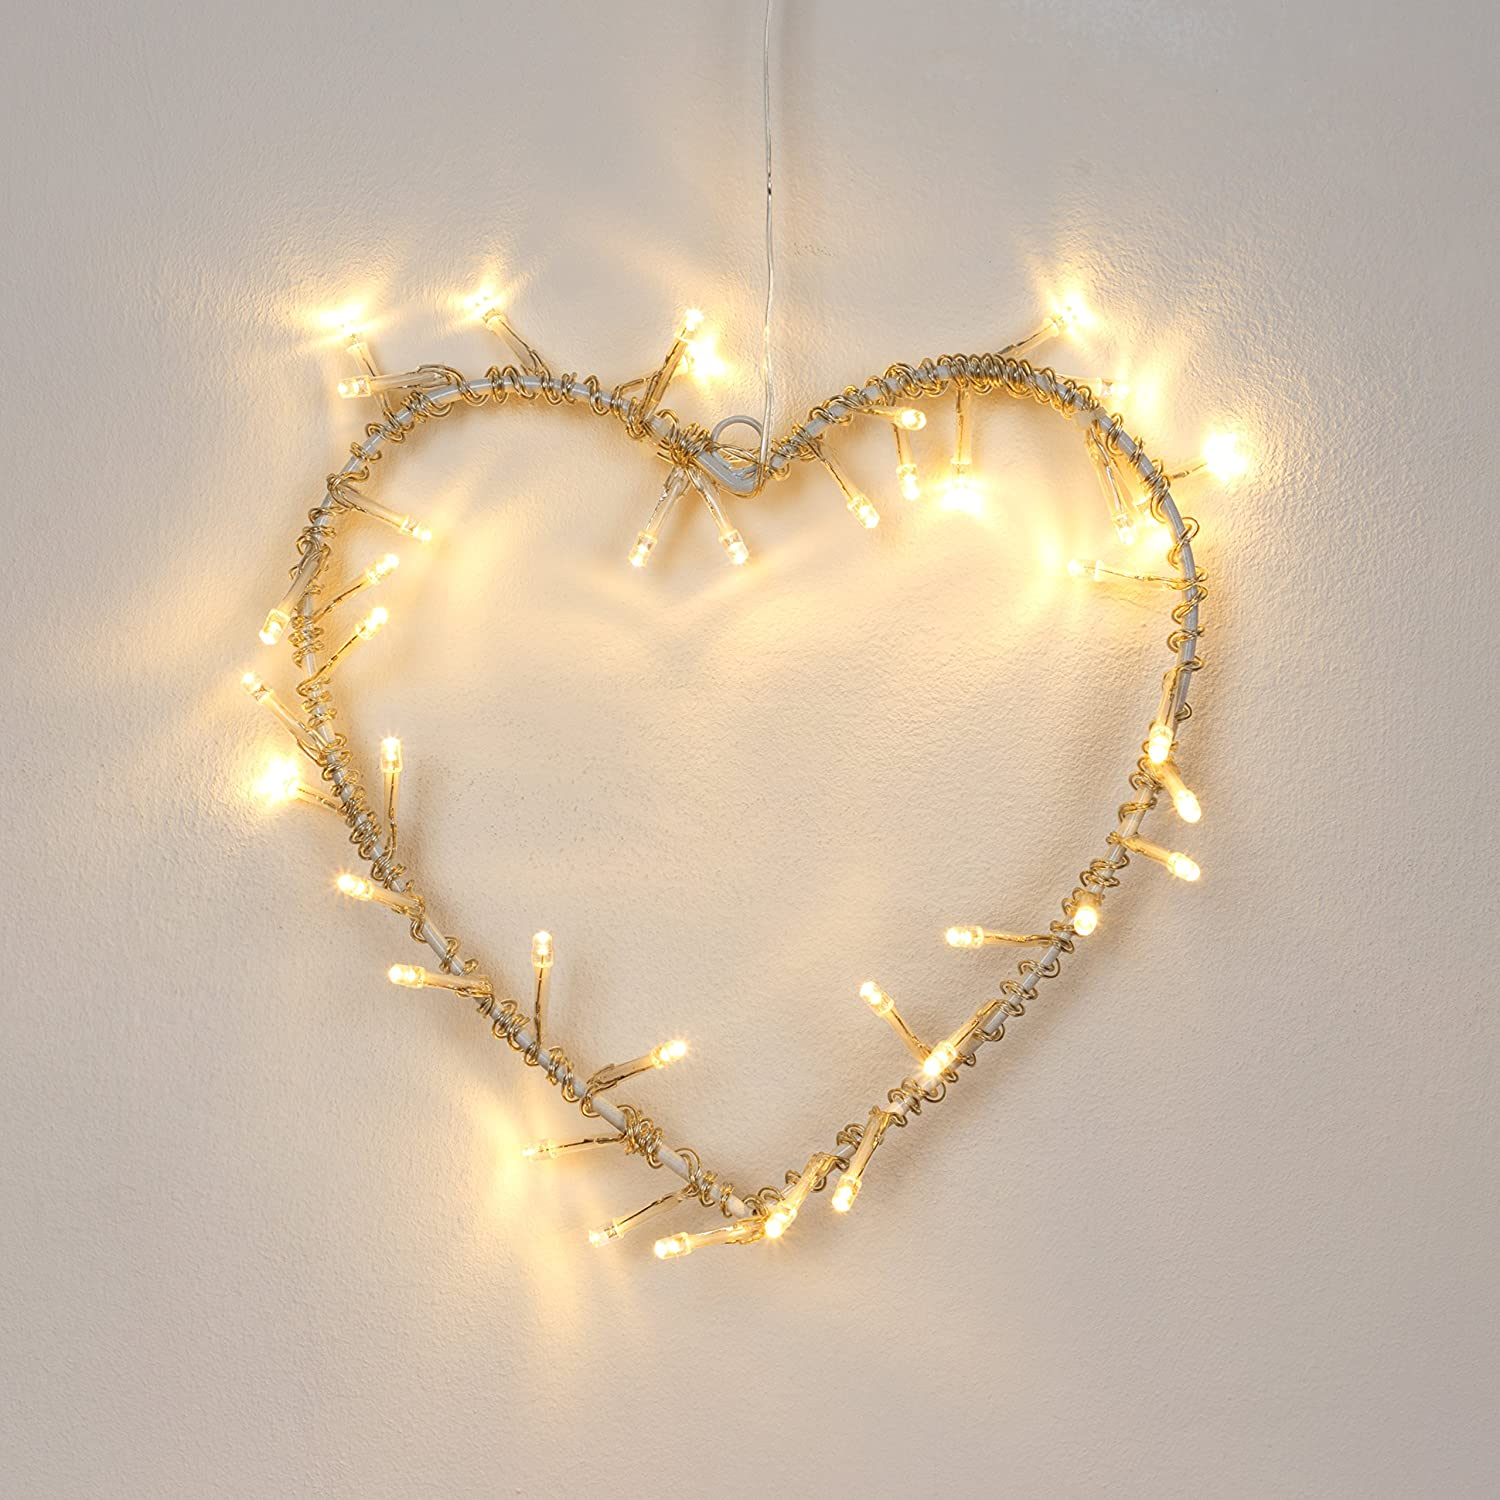 Decorative Warm White LED Battery Operated Metal Heart Wall Light ...